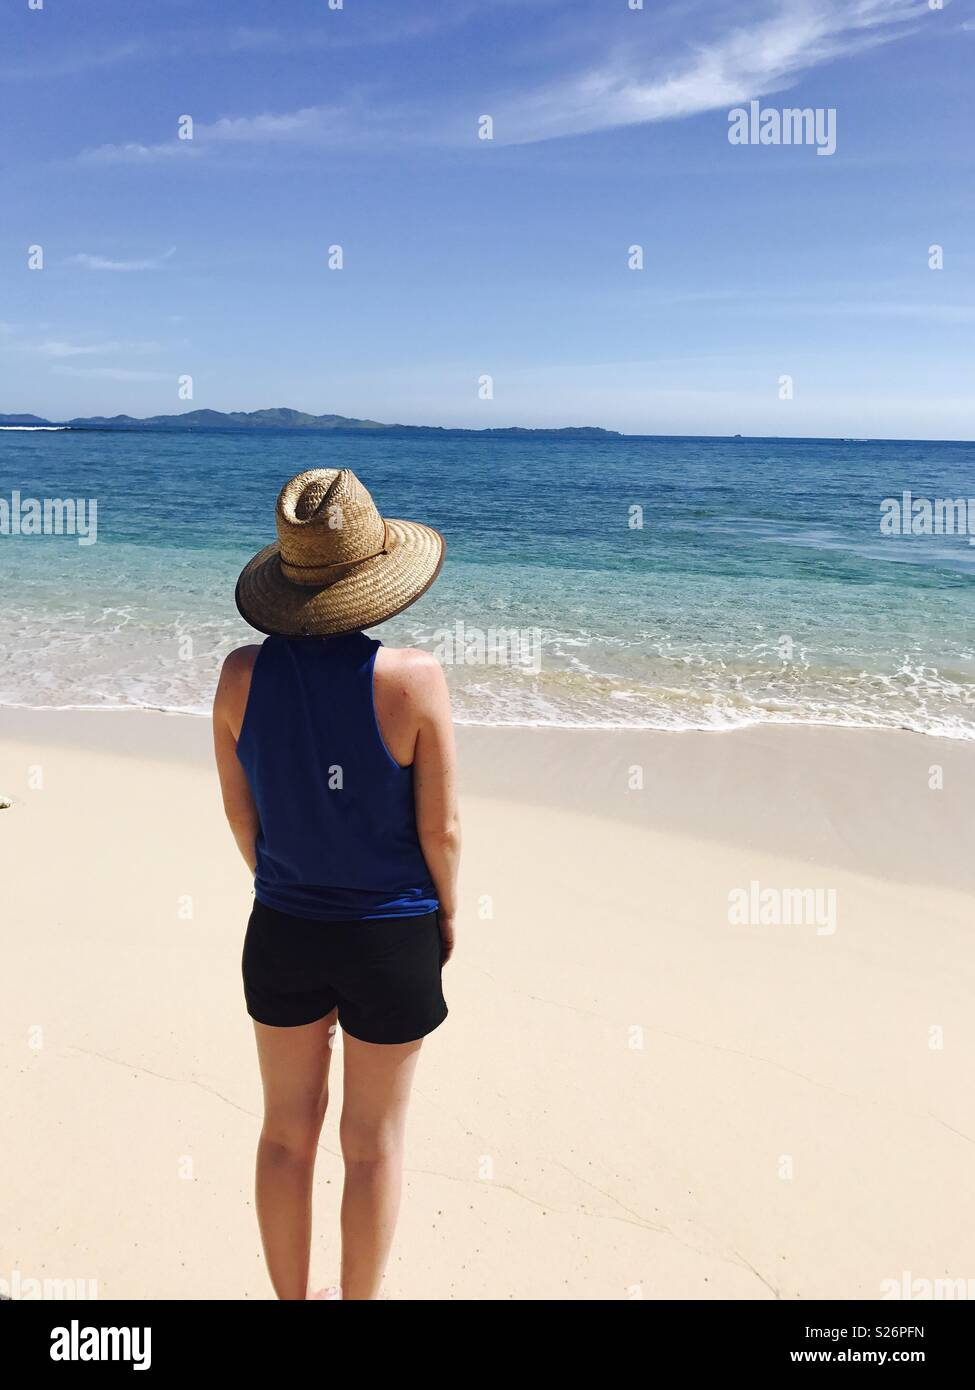 A young women stand in the beach looking at the ocean. Tavarua island resort, Nadi Fiji. - Stock Image